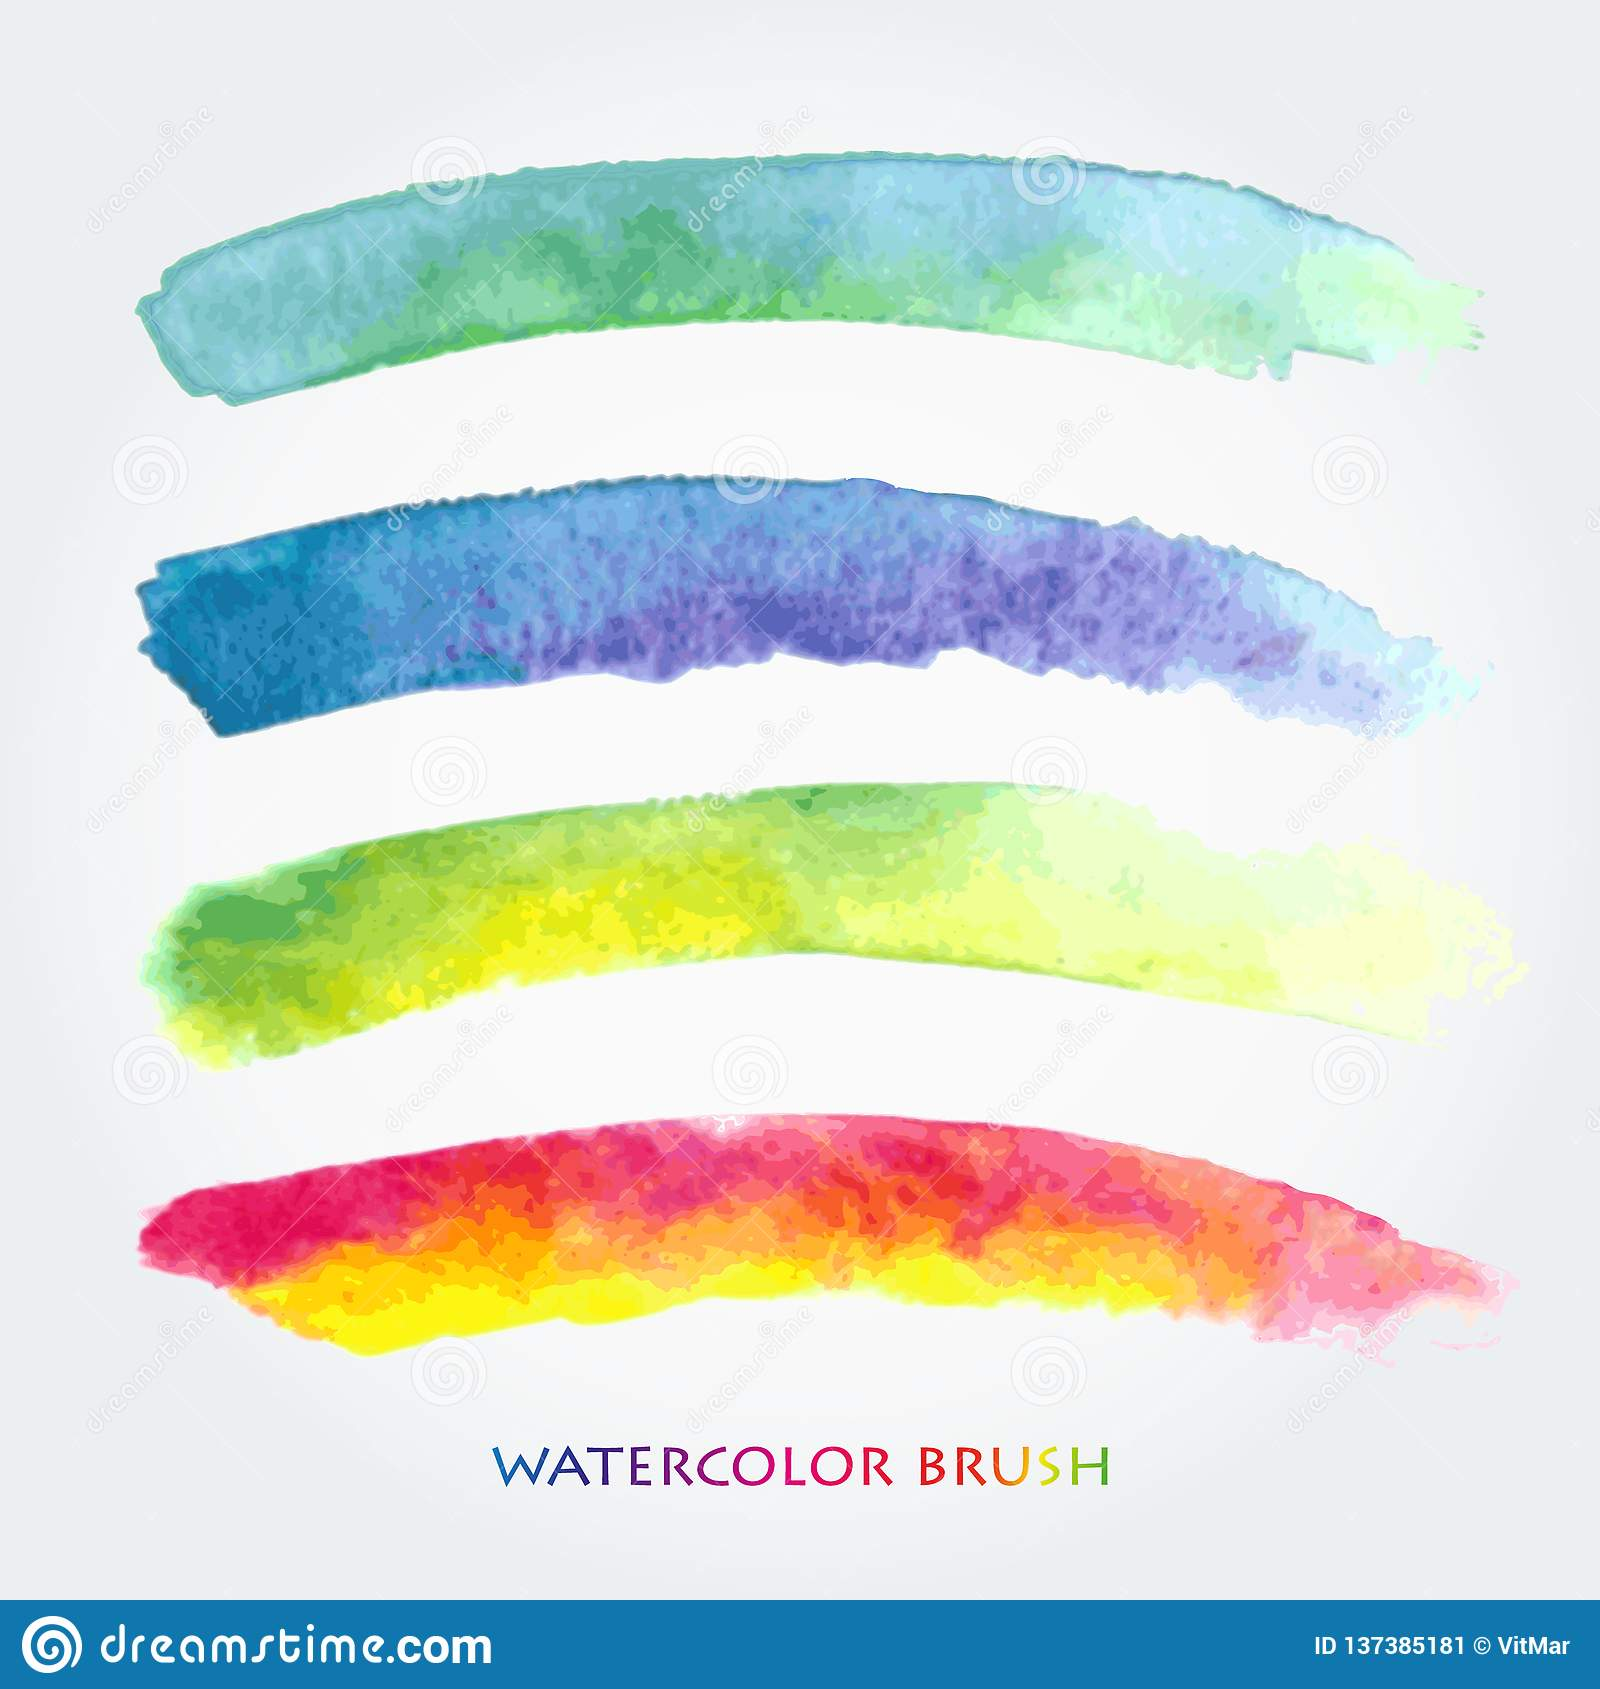 Set of colored brush strokes created with watercolors. Saved in the brushes palette